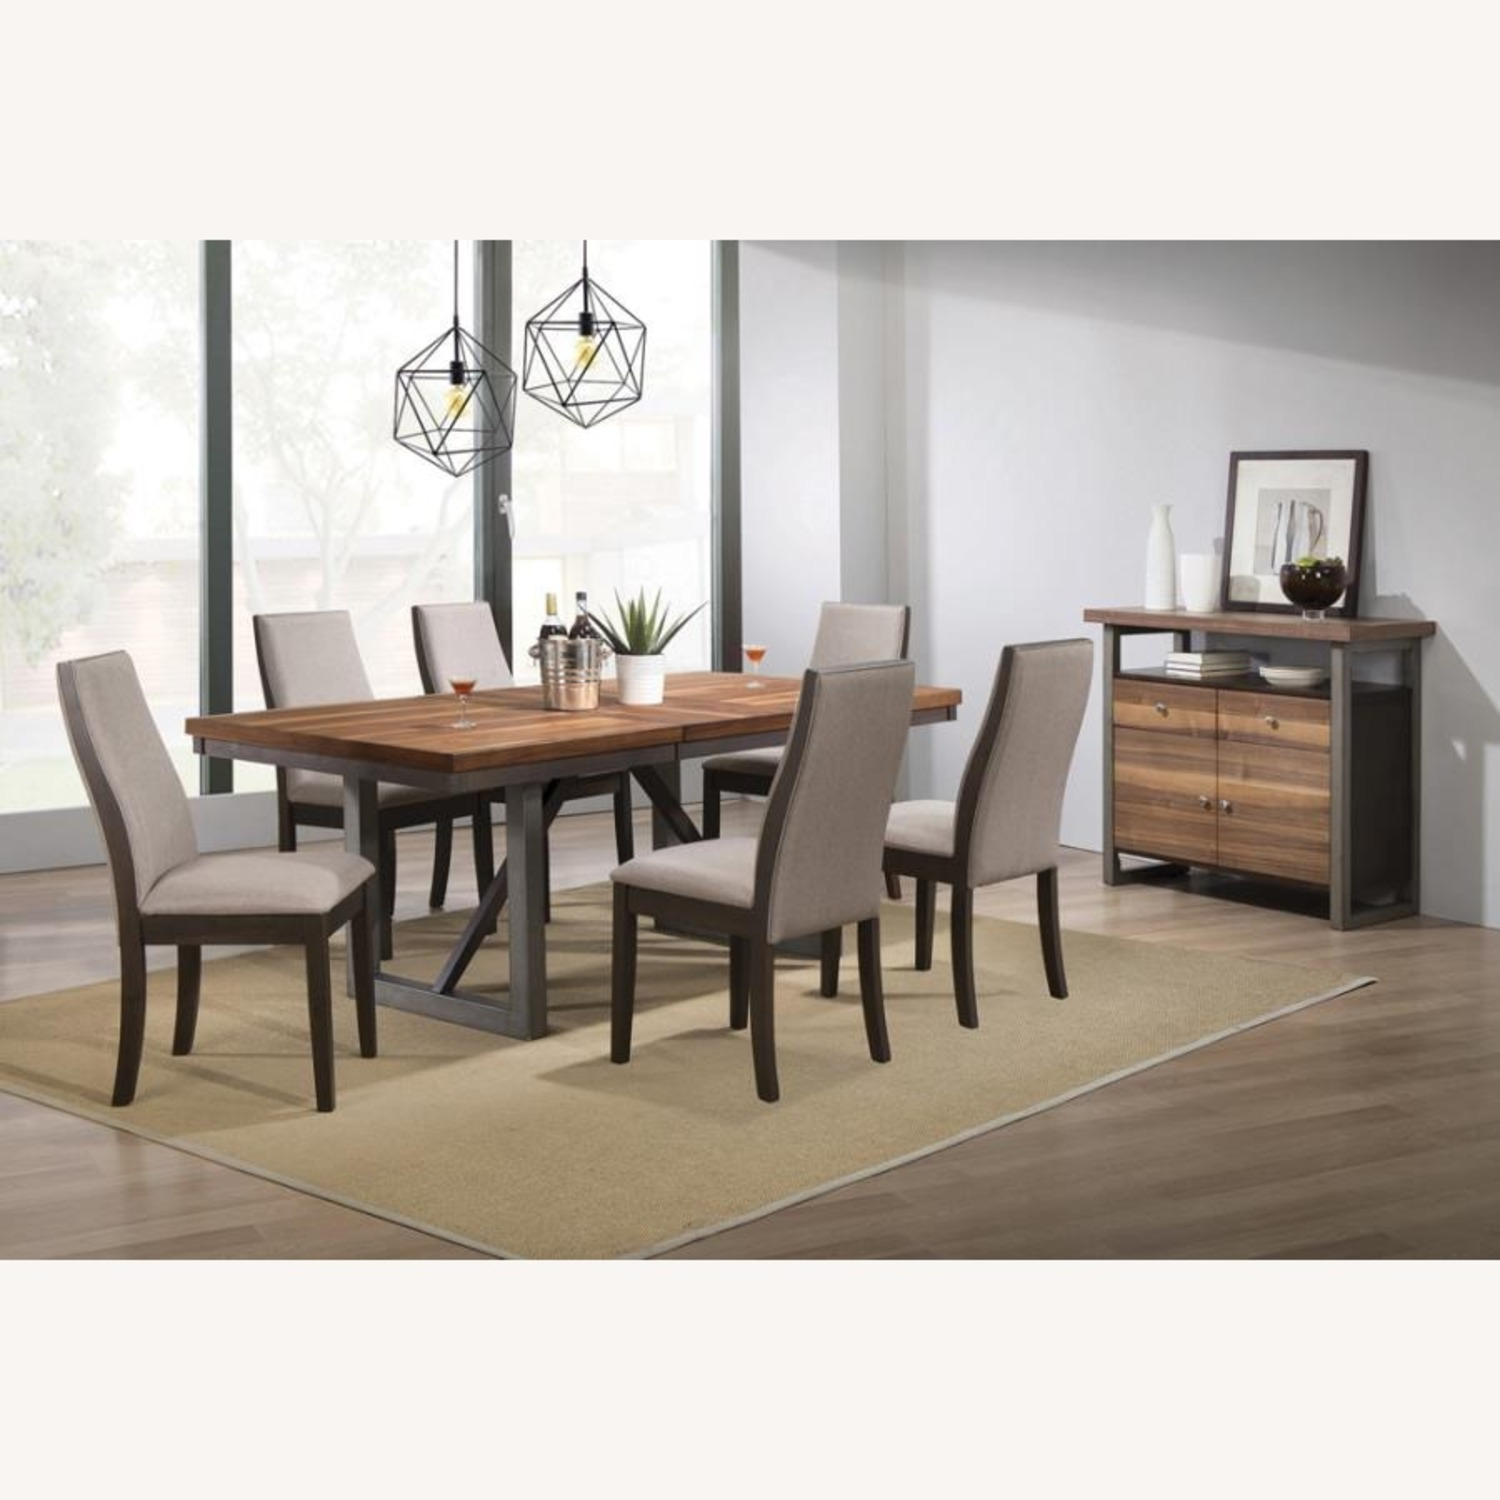 Dining Chair In Grey Fabric & Espresso Wood Finish - image-5